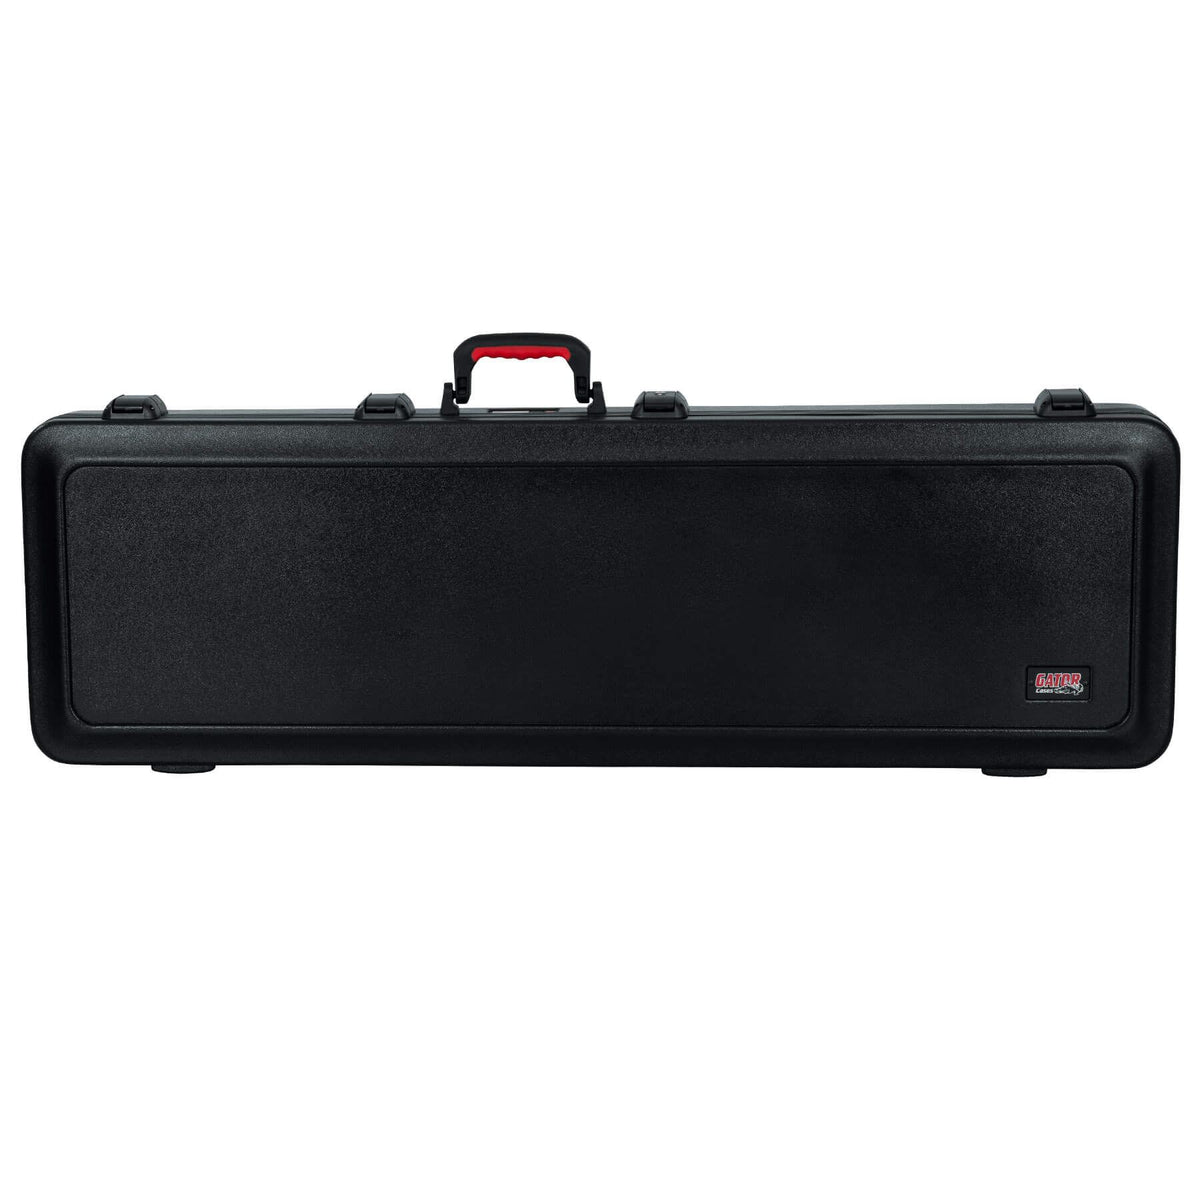 Gator ATA Bass Guitar Case fits Schecter Stiletto Custom-4, Custom-5, Custom-6